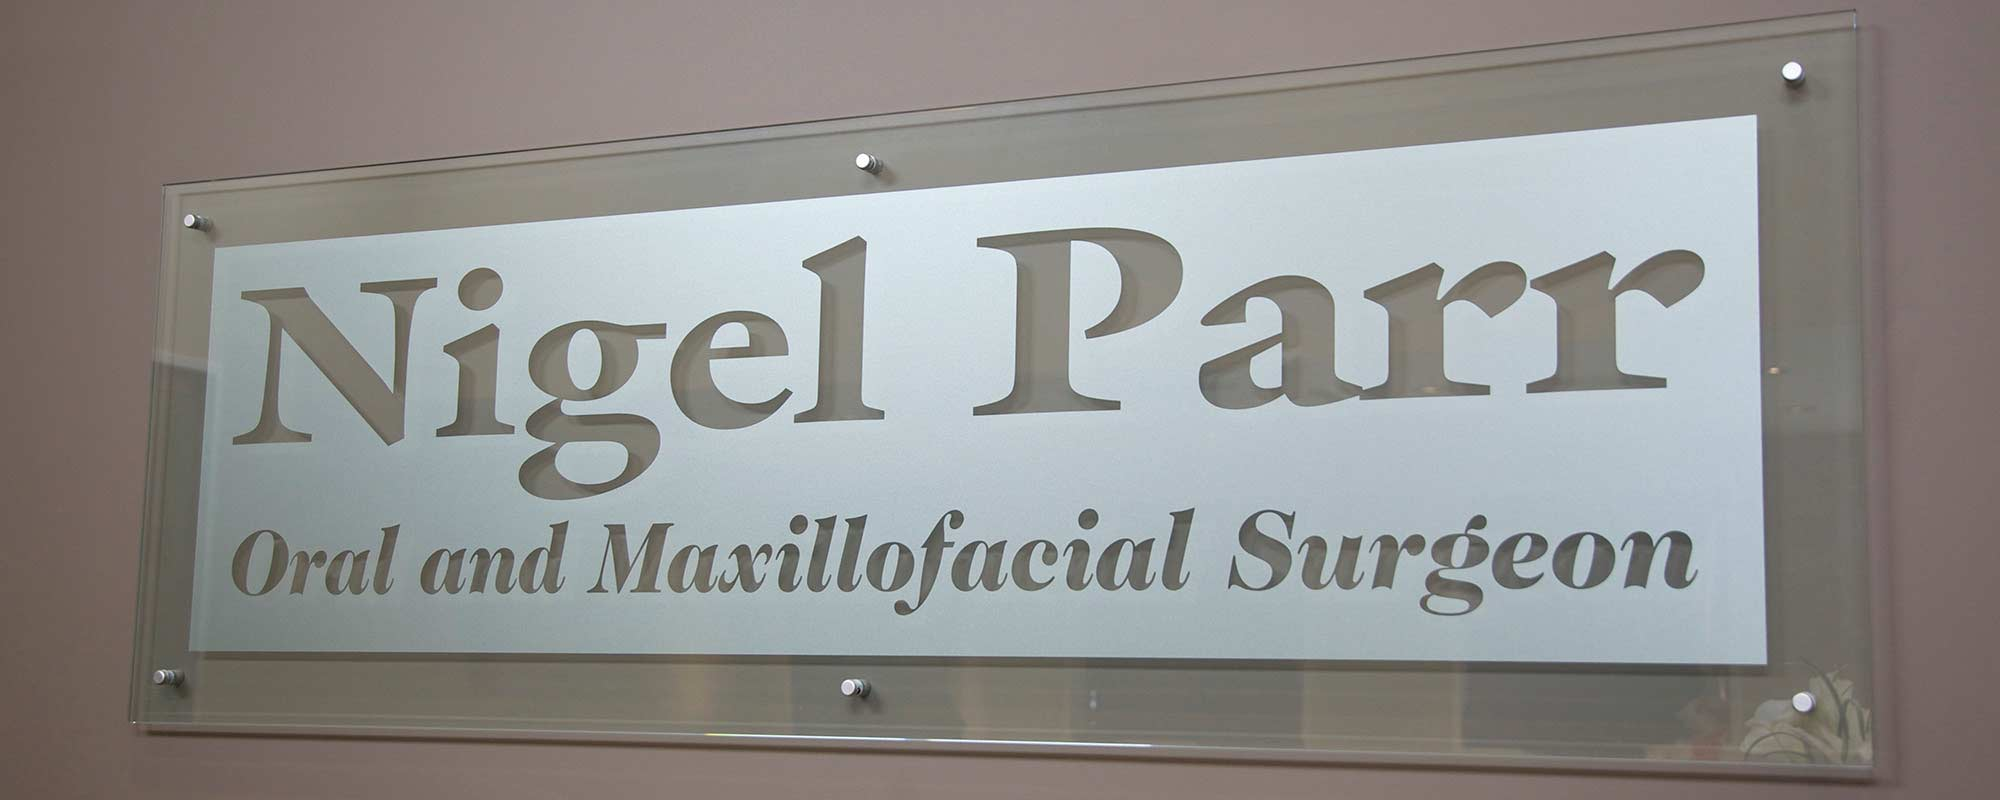 Nigel Parr Green Lane Day Stay Surgical Ltd Sign